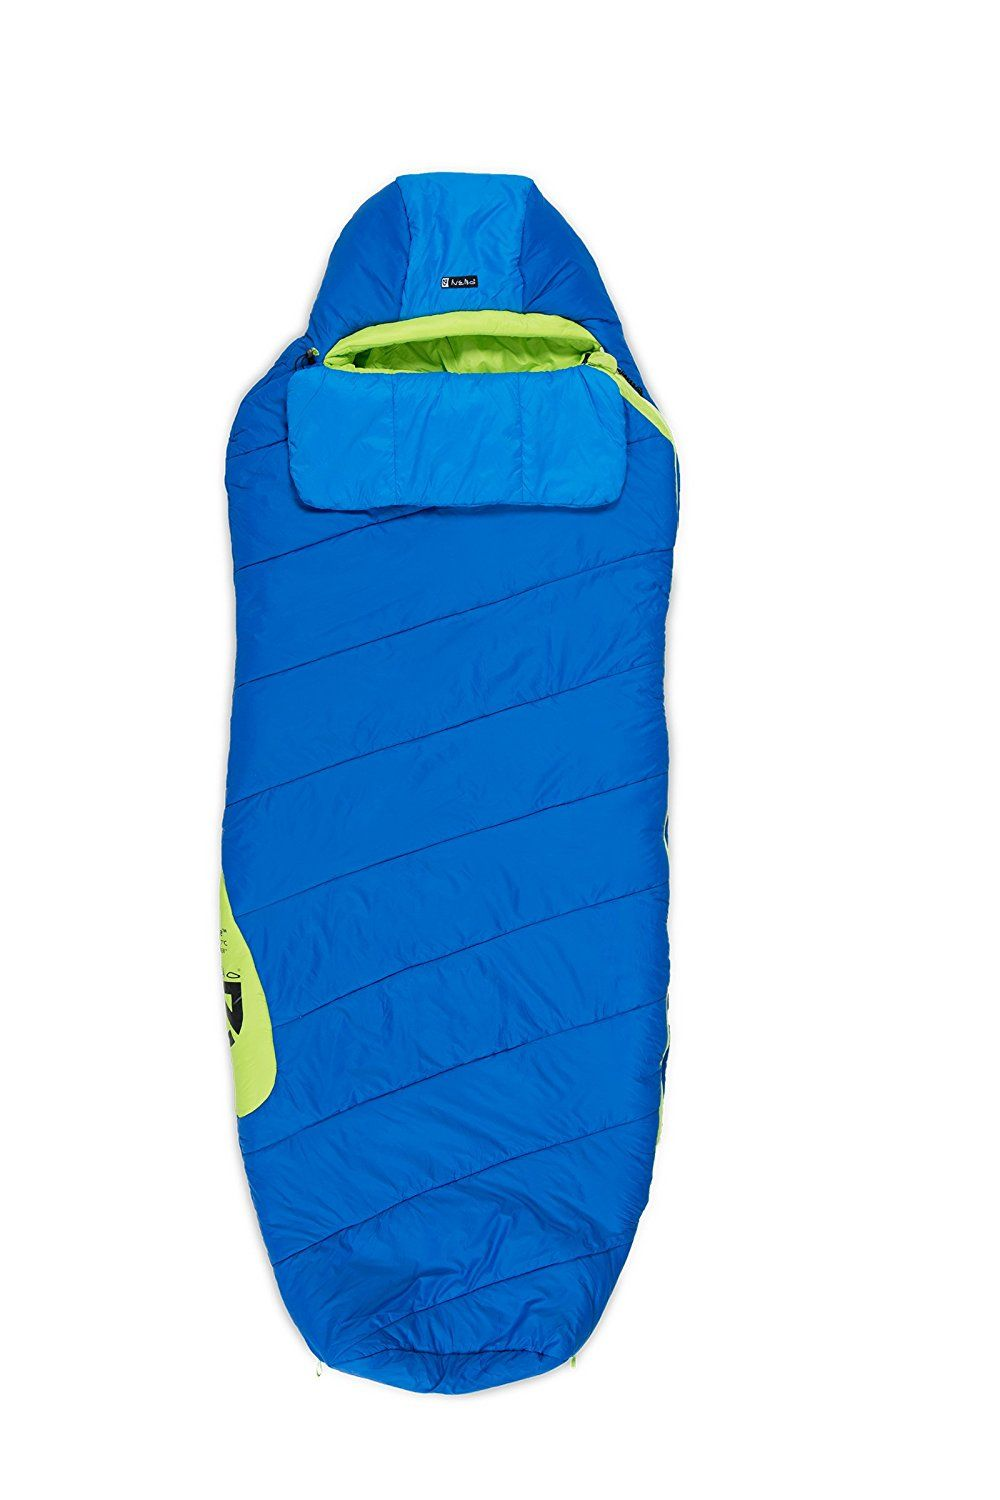 lowest price d5dbd 1af7a Nemo Verve Sleeping Bag -- Review more details here ...